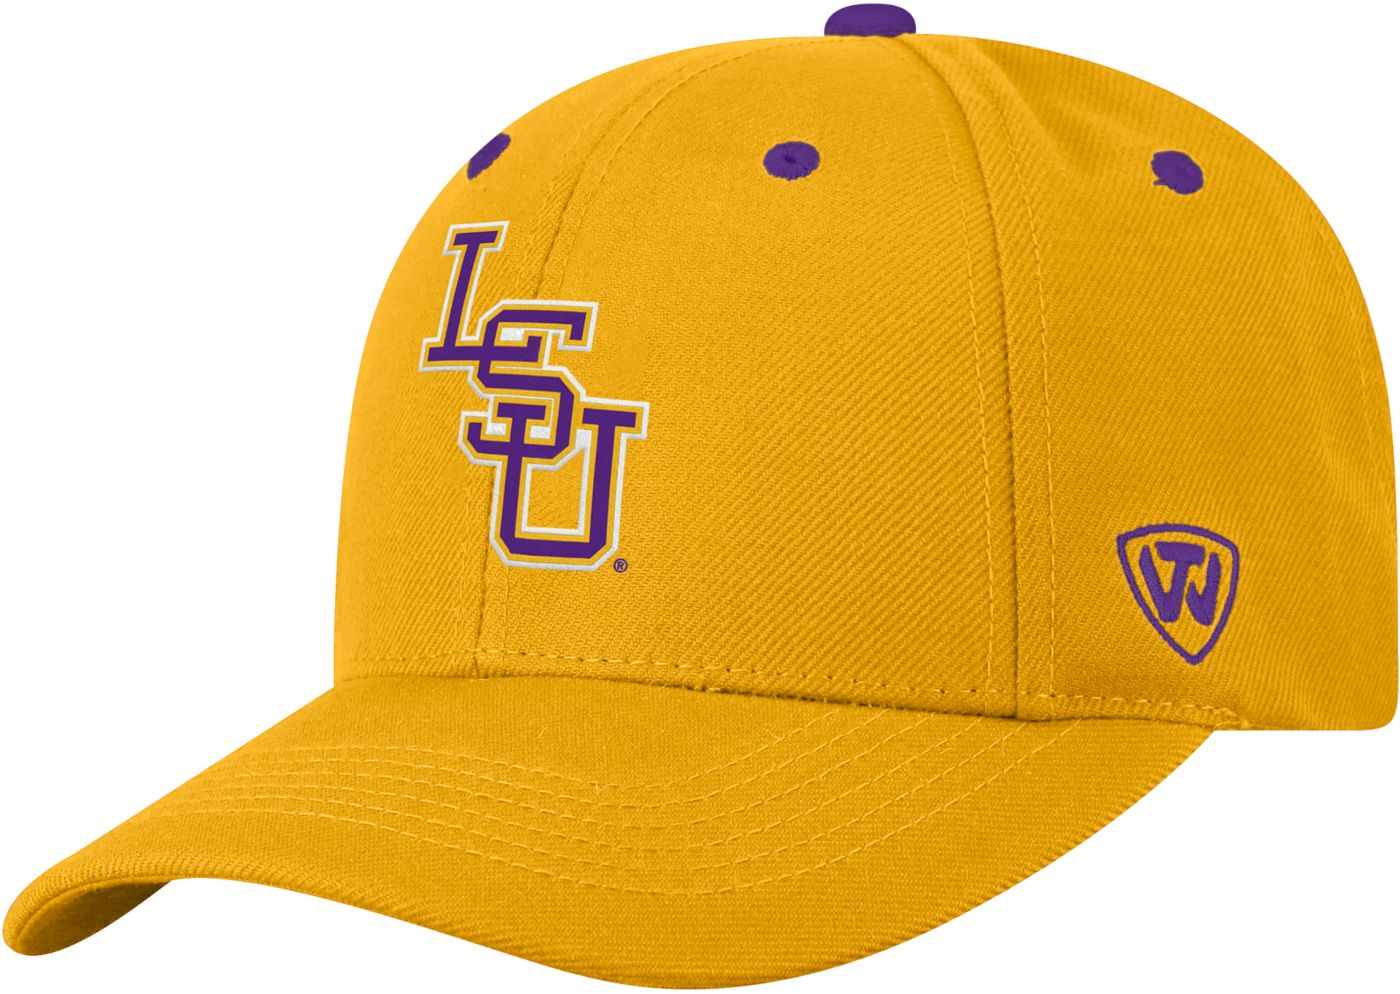 Top of the World Men's LSU Tigers Gold Triple Threat Adjustable Hat